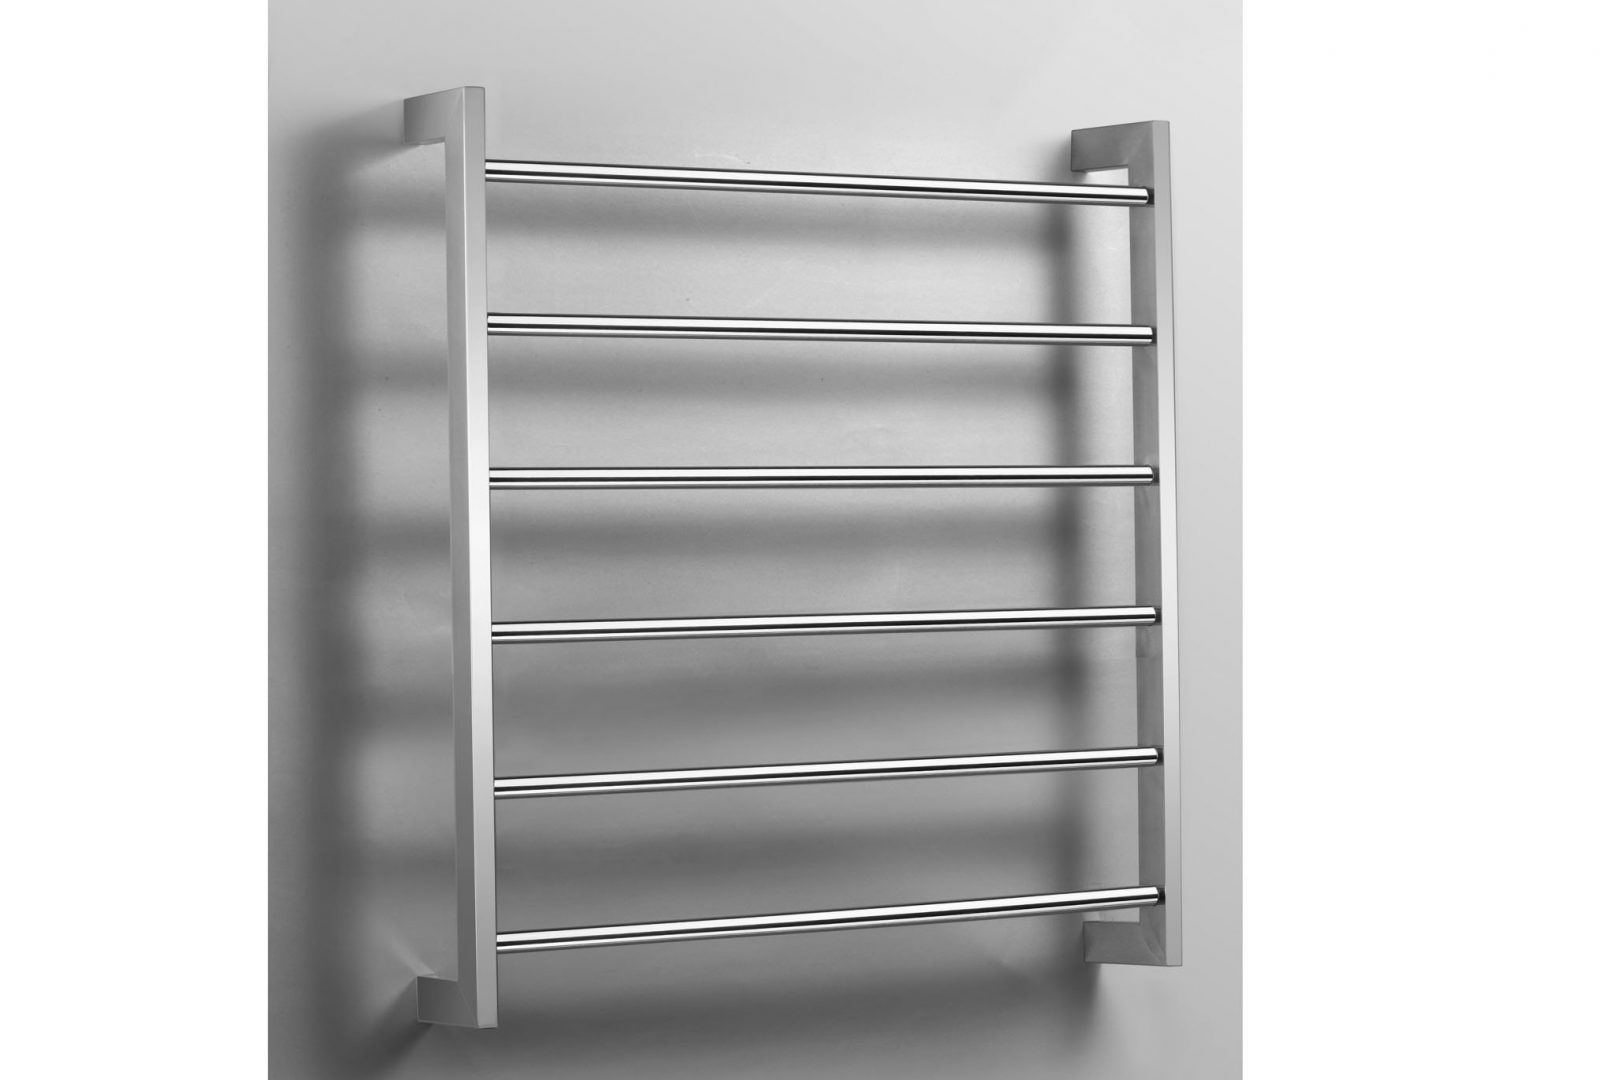 Caldo 6 Bar Heated Towel Rail Left Wiring- Chrome